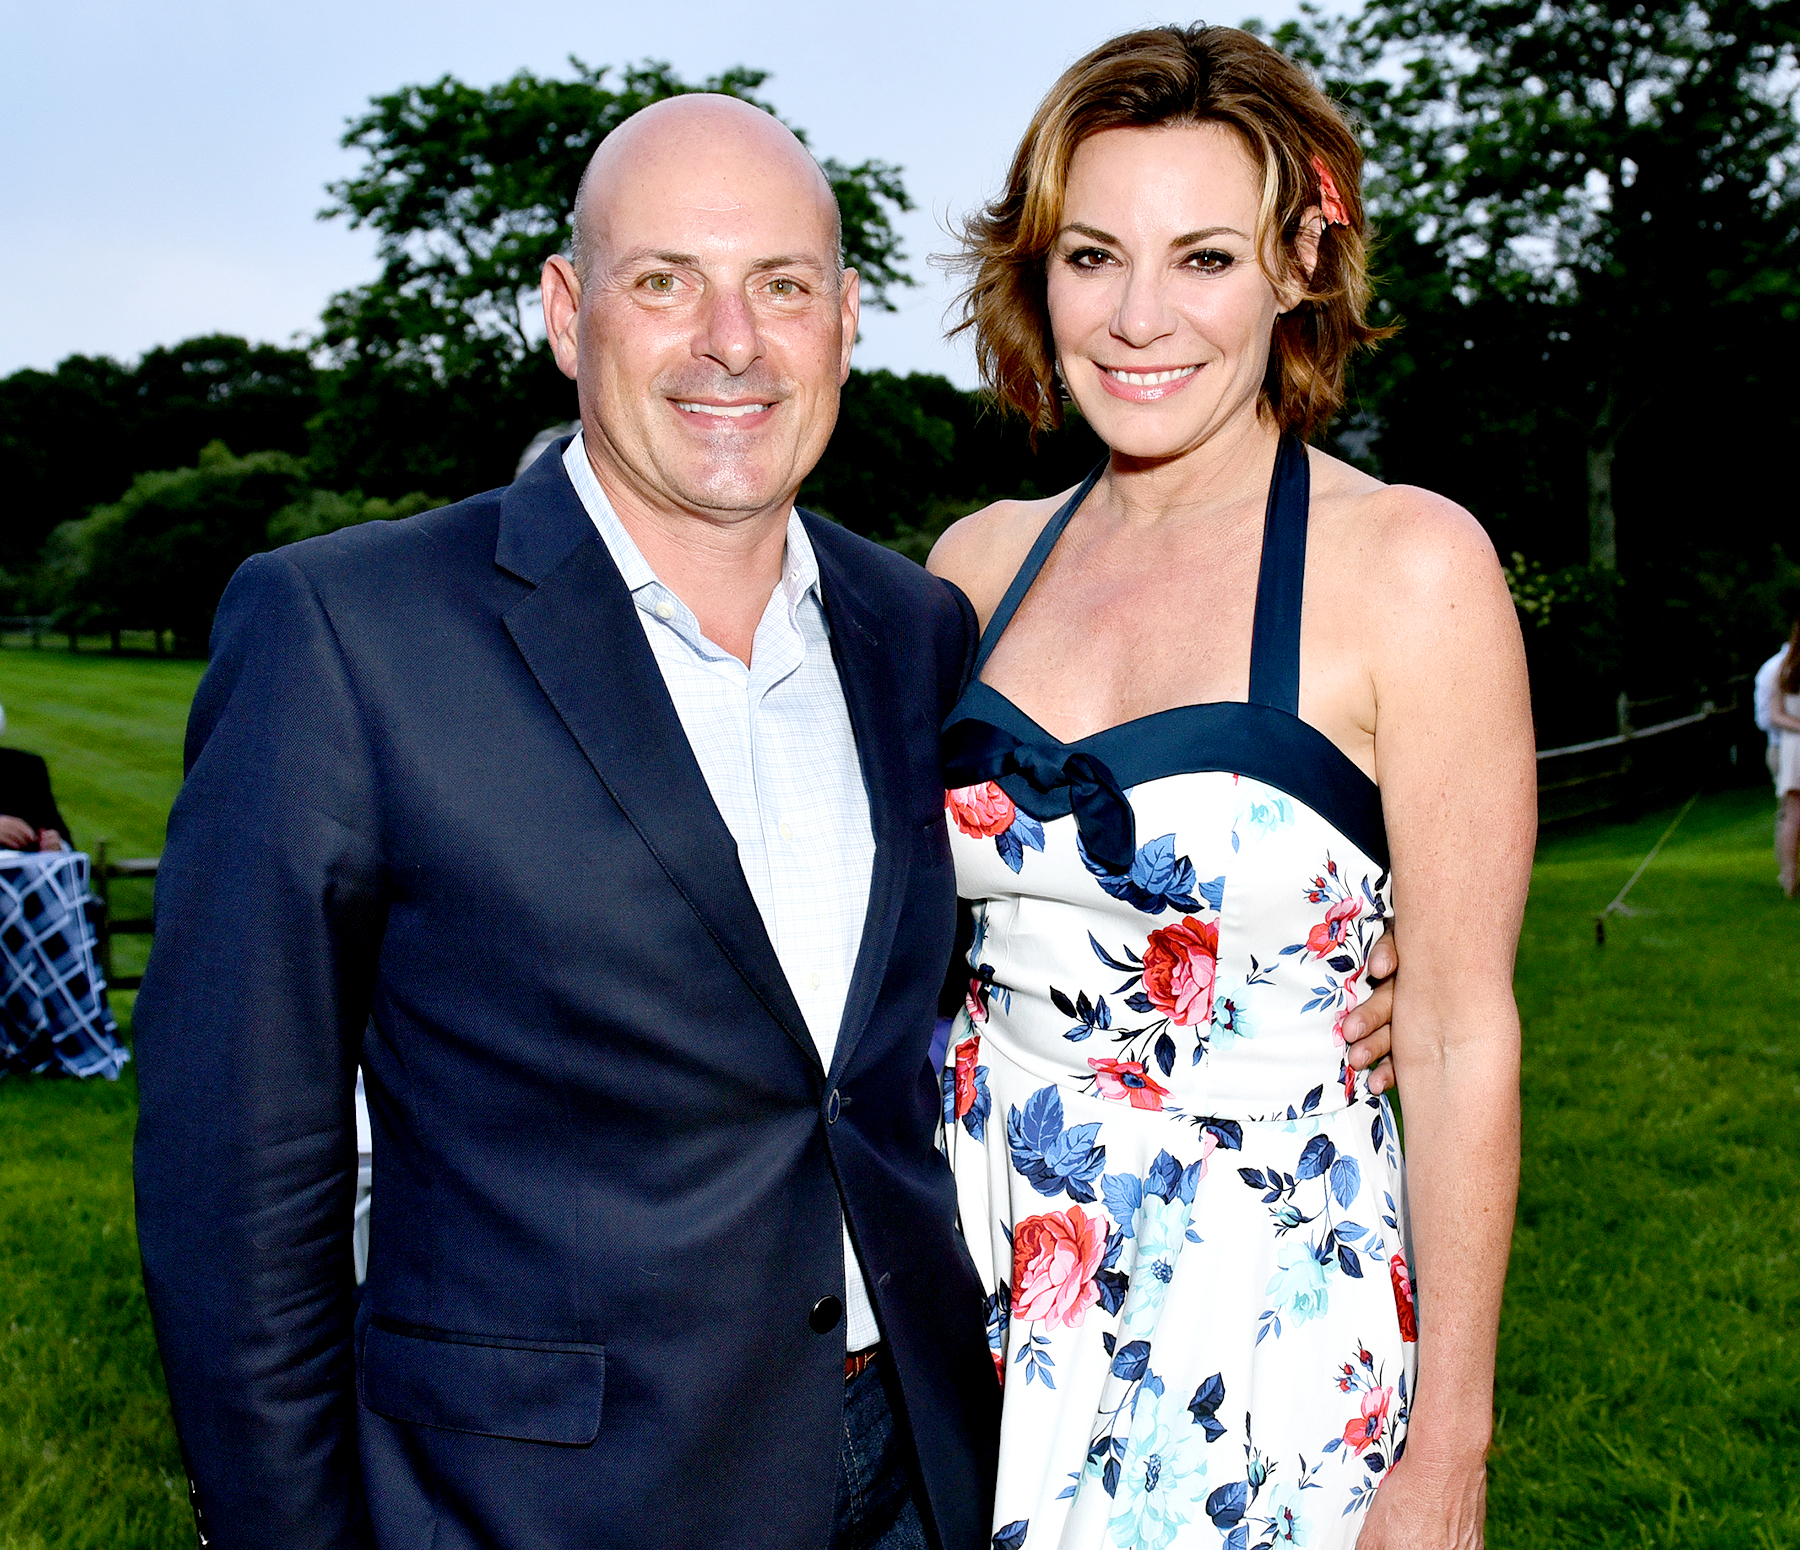 Luann de Lesseps and Tom D' Agostino attend the Alzheimer's Association Hosts Rita Hayworth Gala Hamptons Kickoff Event in Water Mill, New York, on July 28, 2017.